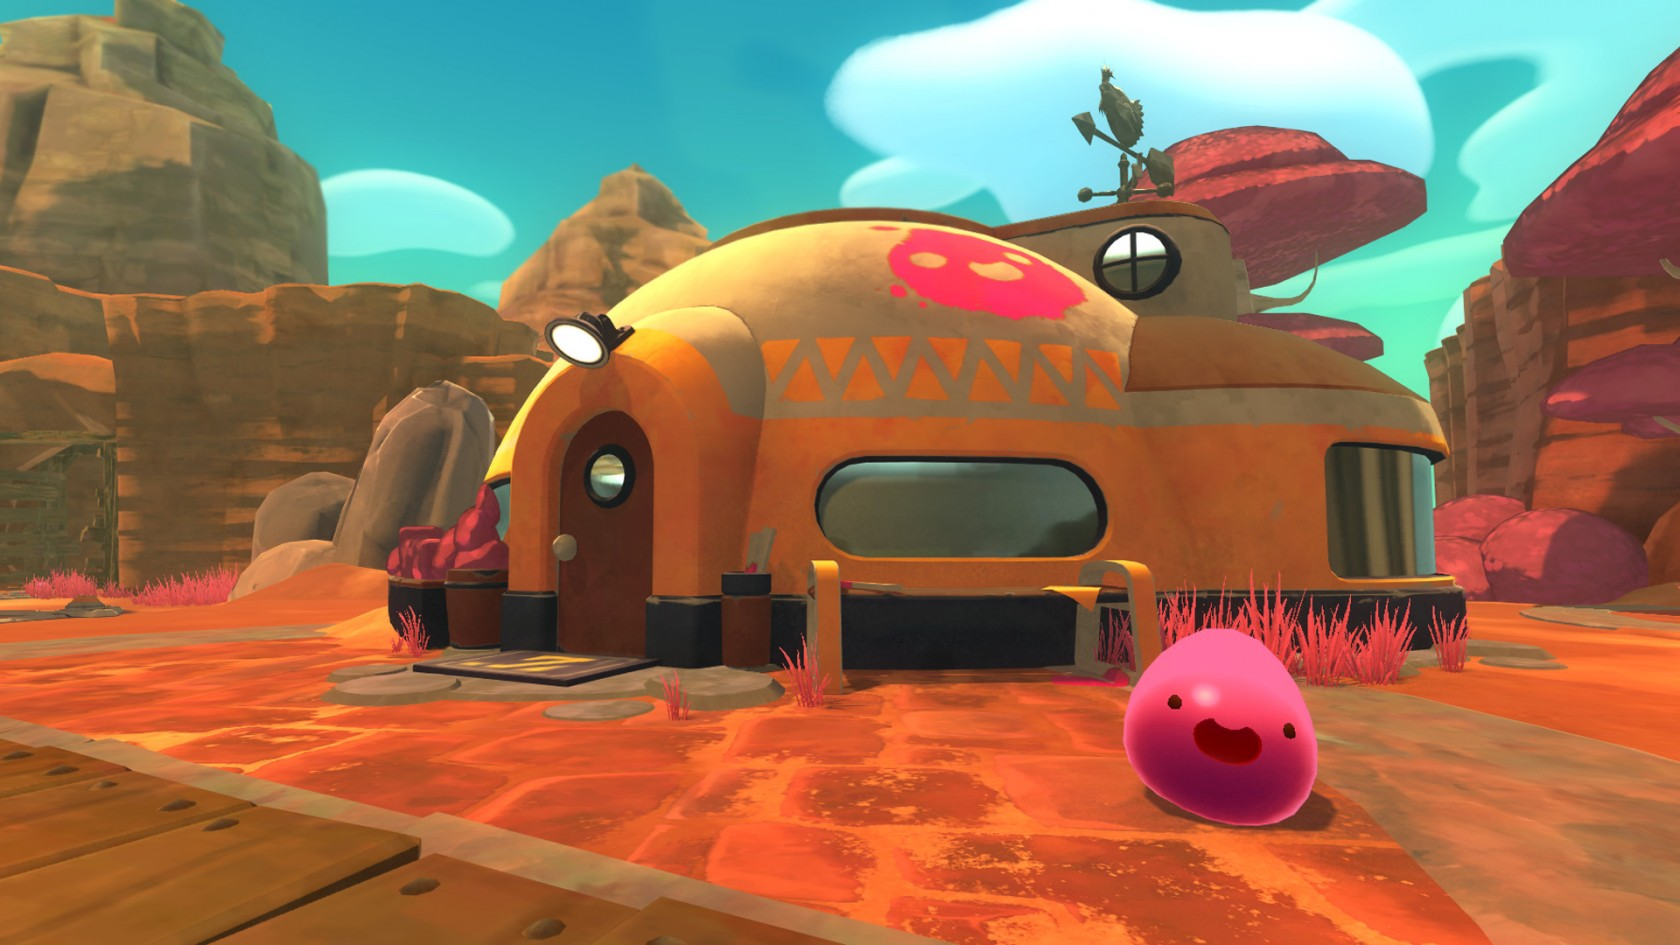 Slime Rancher is the next free game on Epic Games Store